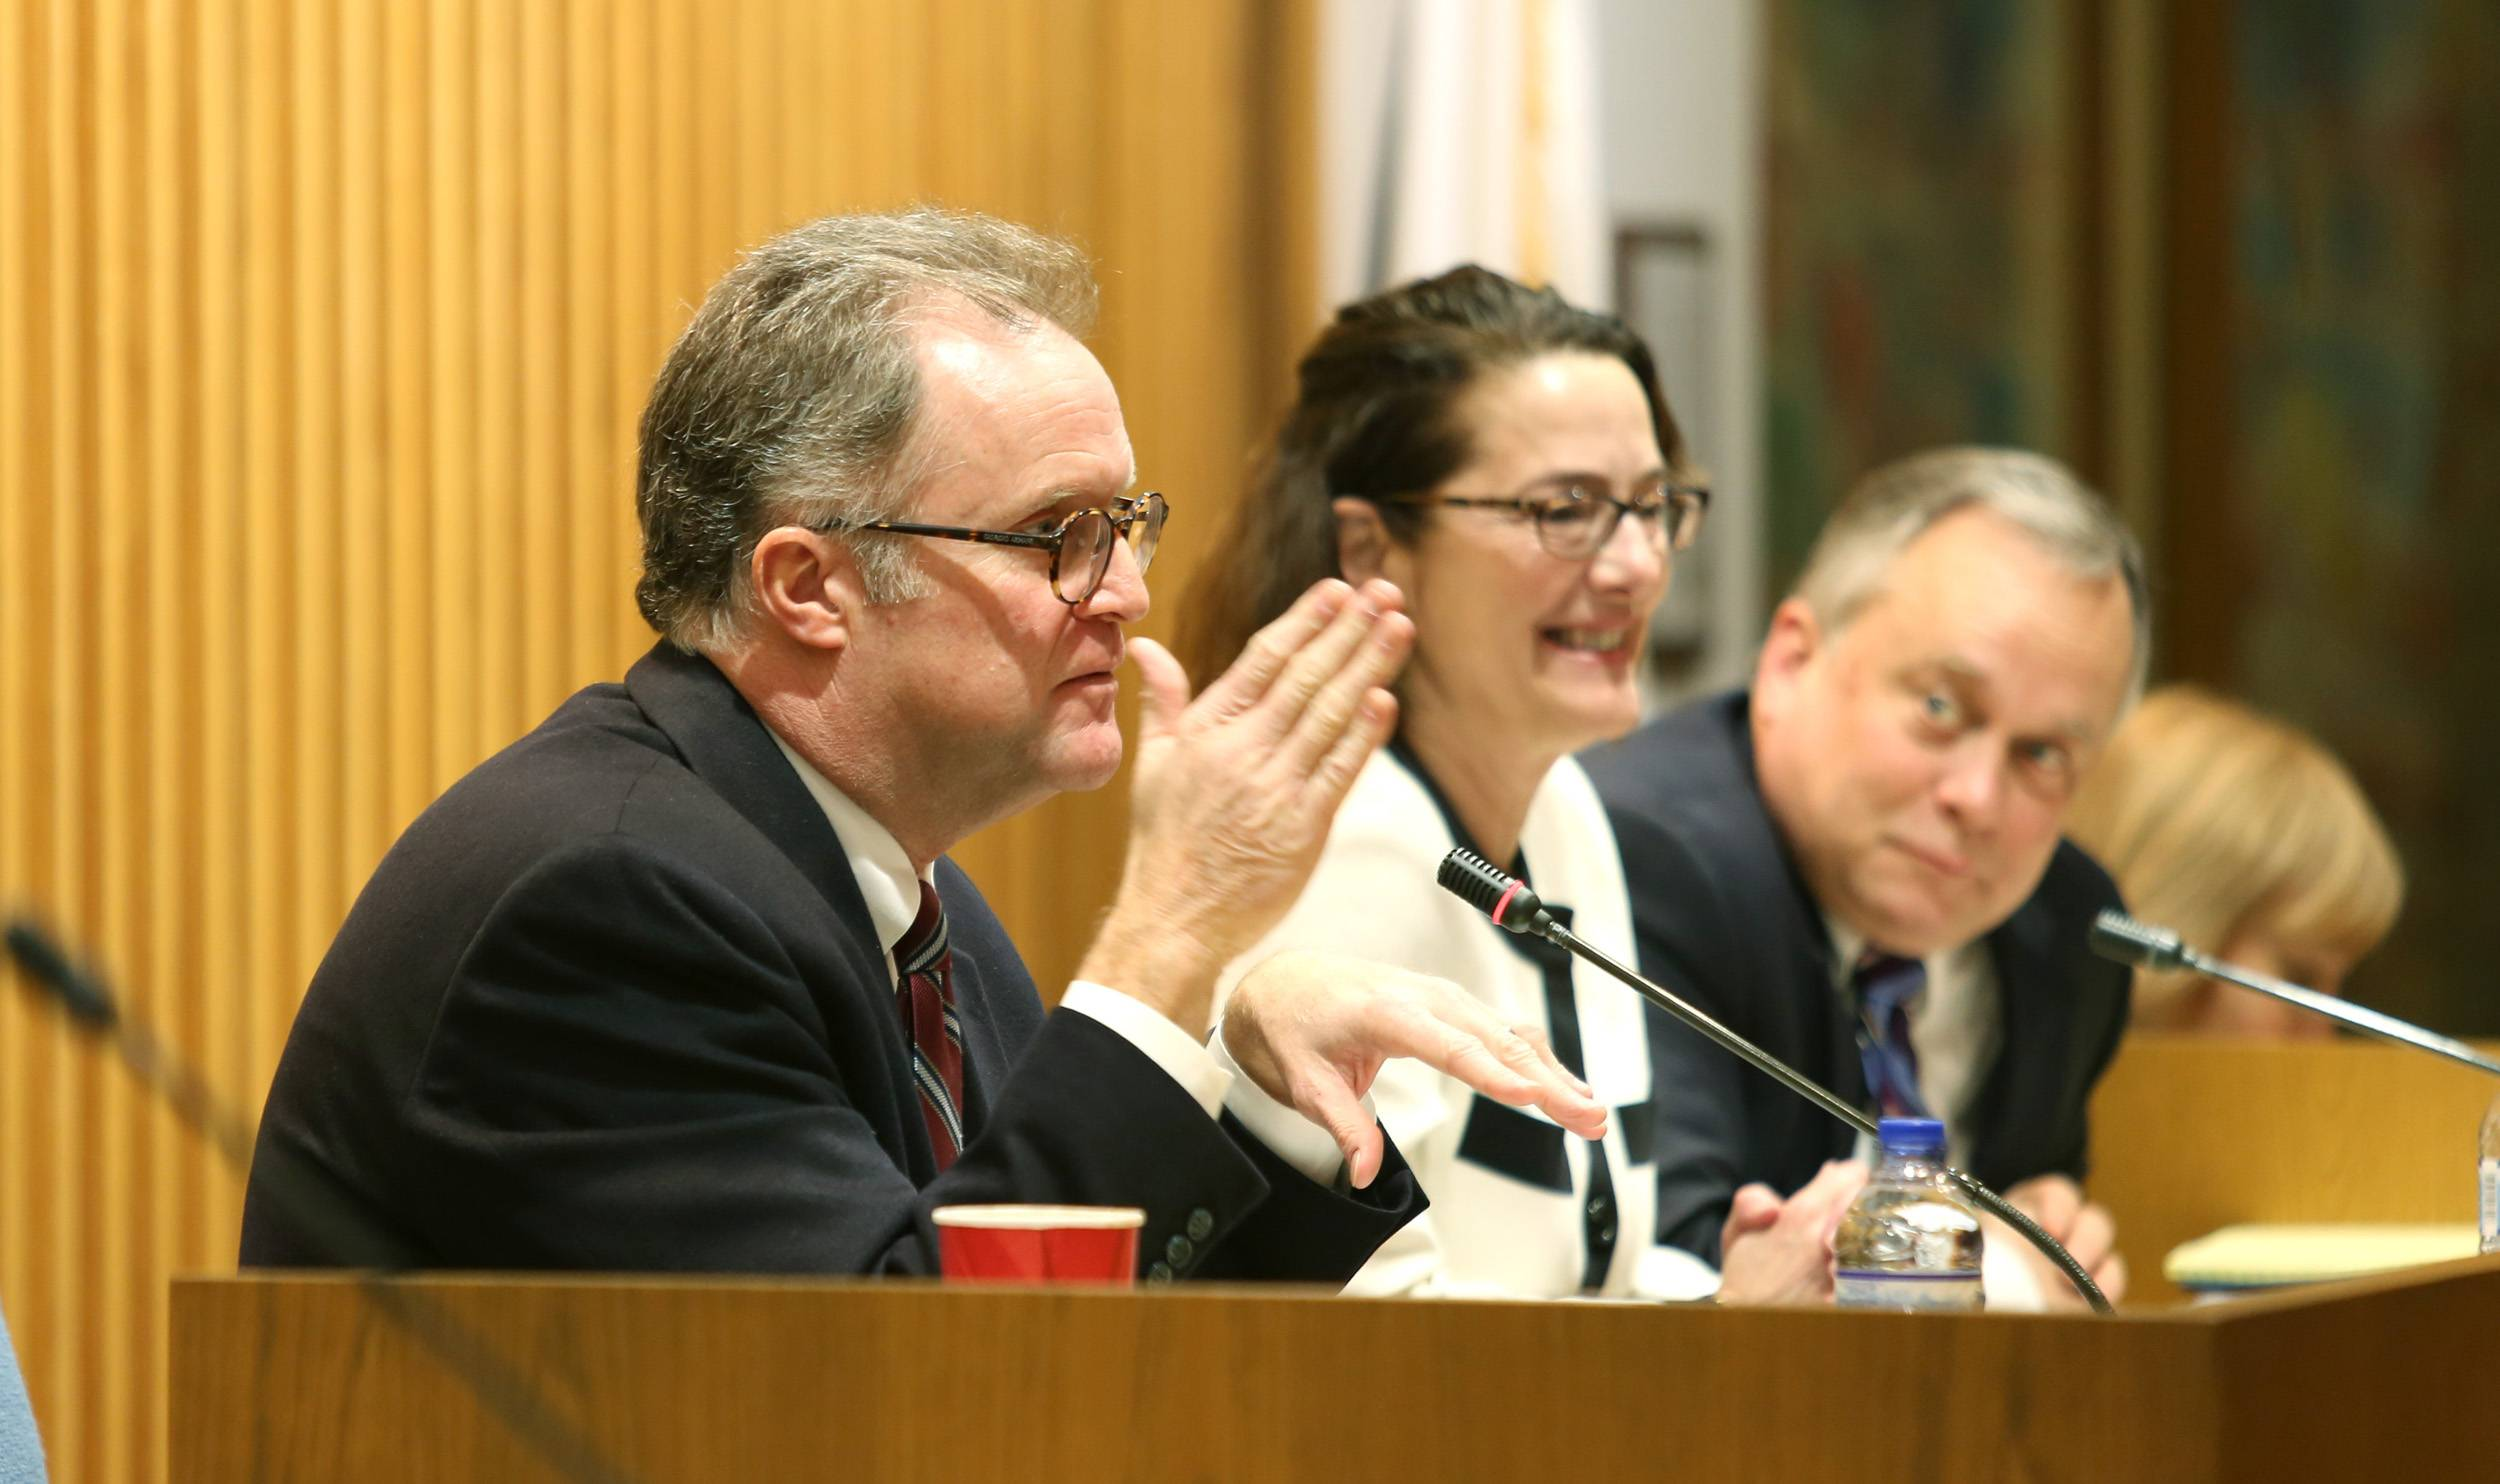 DuPage County Board Chairman Dan Cronin, left, hosts a forum for finalists in the application process to fill the county board vacancy in District 4. Amy Grant, center, and Grant Eckhoff also posed questions to the finalists.